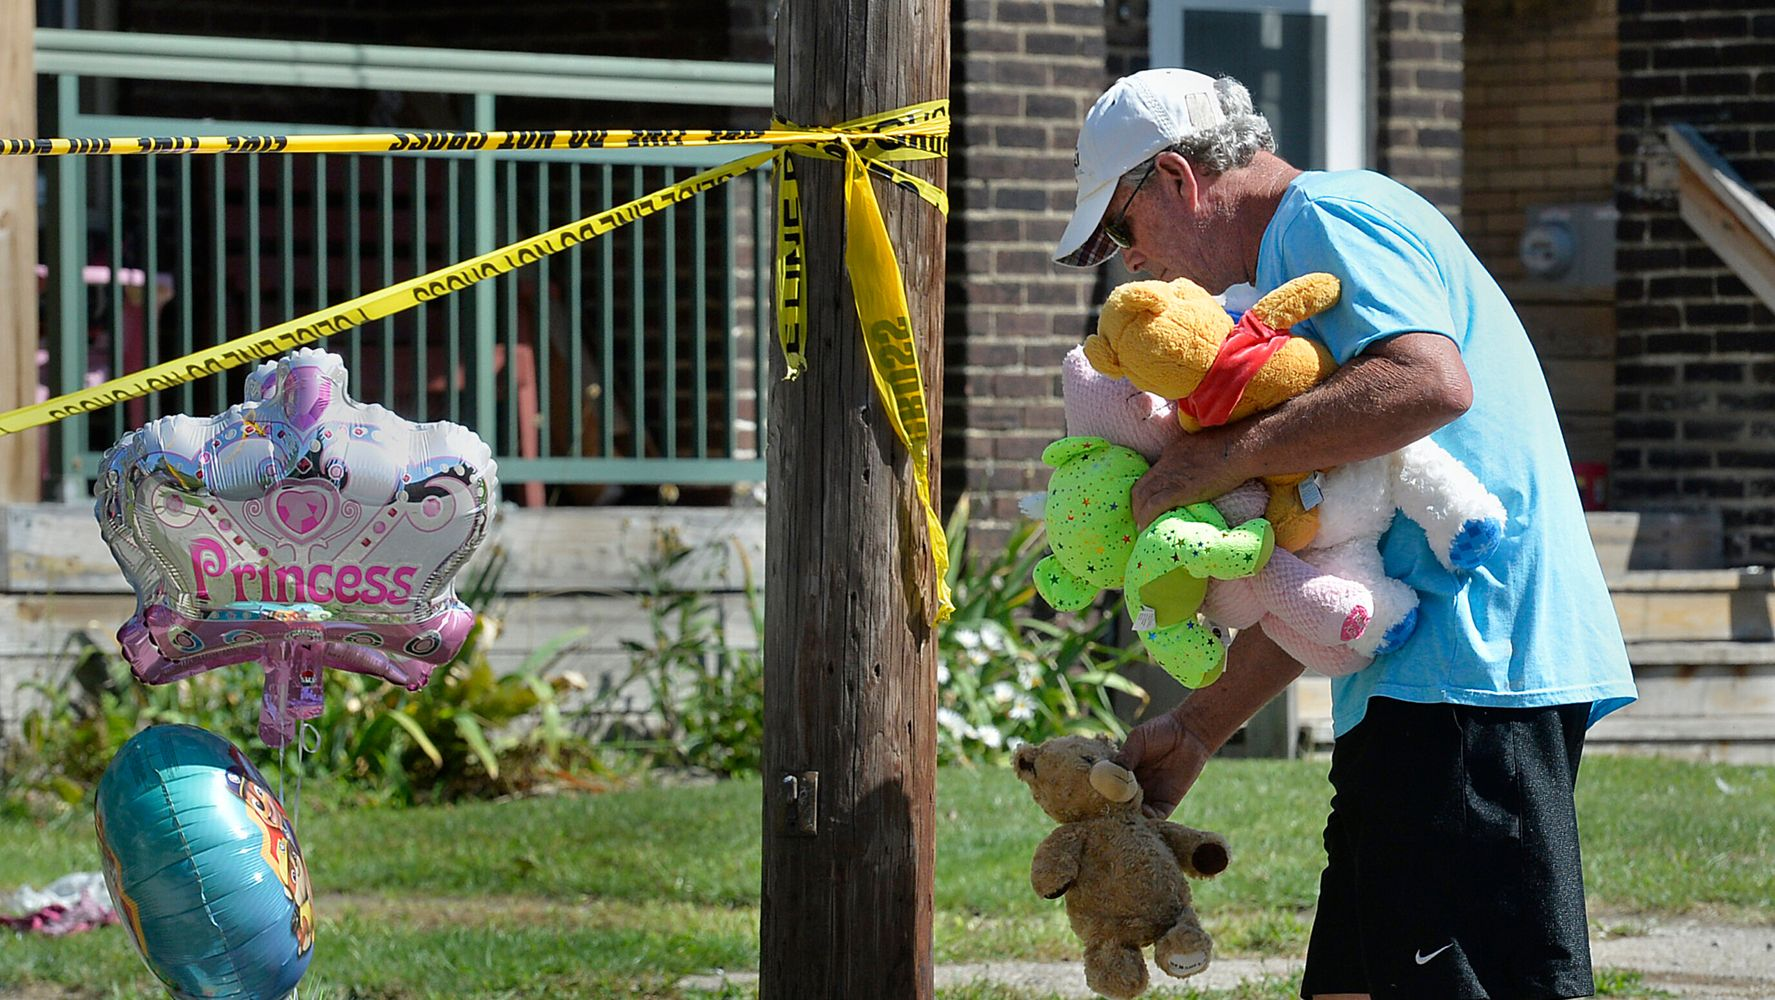 Westlake Legal Group 5d50a8442400004a4c937ee3 Fire At Pennsylvania Day Care Kills 5 Children